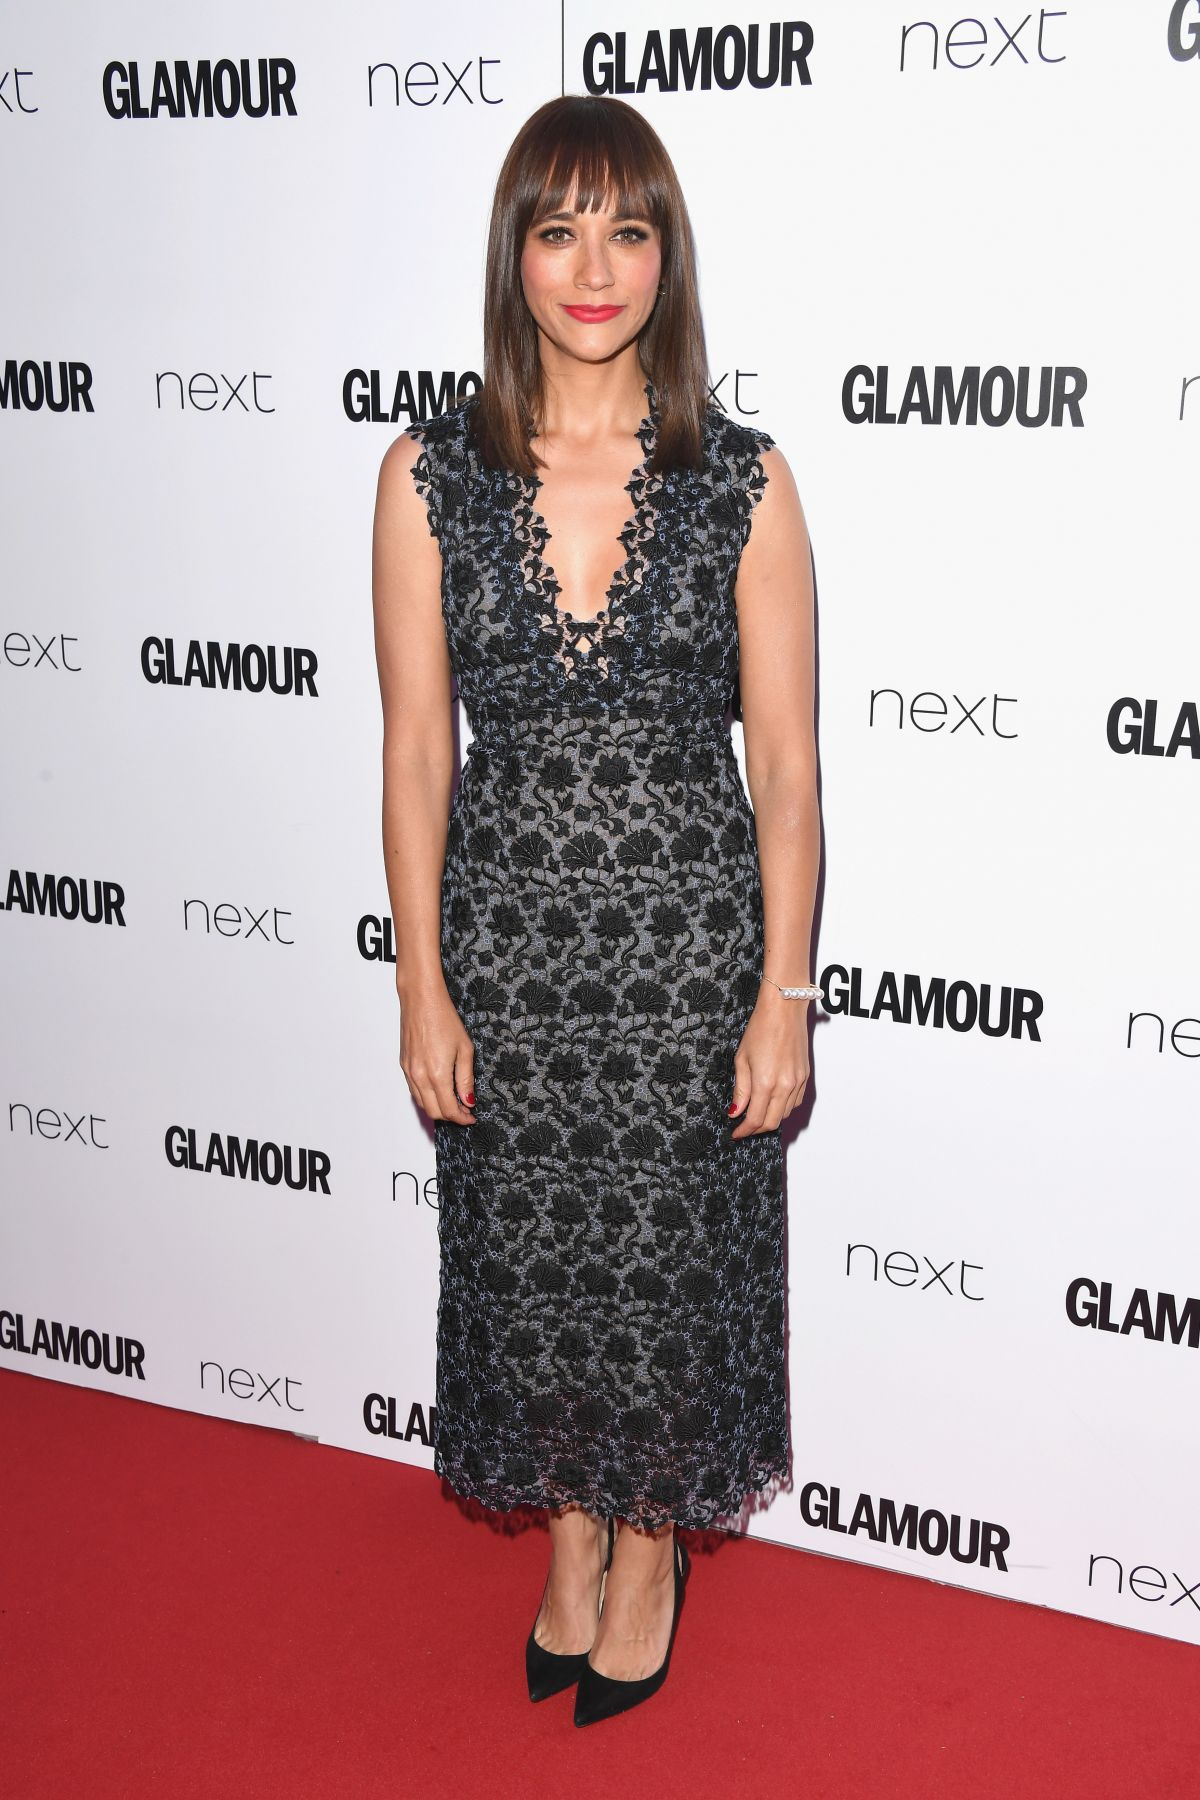 RASHIDA JONES at Glamour Women of the Year Awards in London 06/06/2017